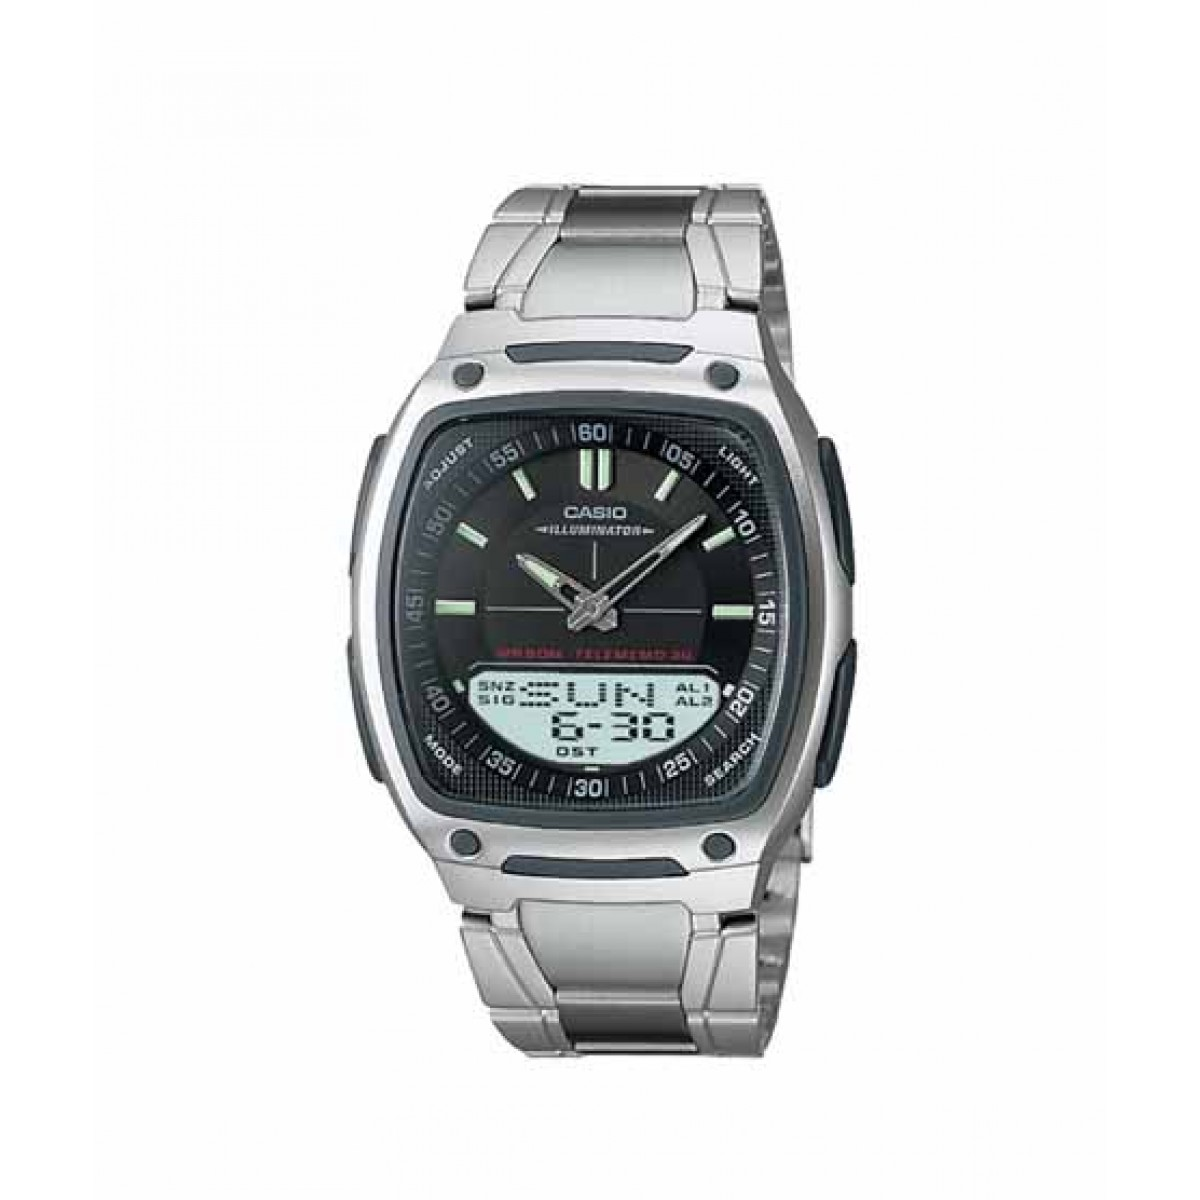 73b750945 Casio Classic Men s Watch (AW81D-1AV) Price in Pakistan